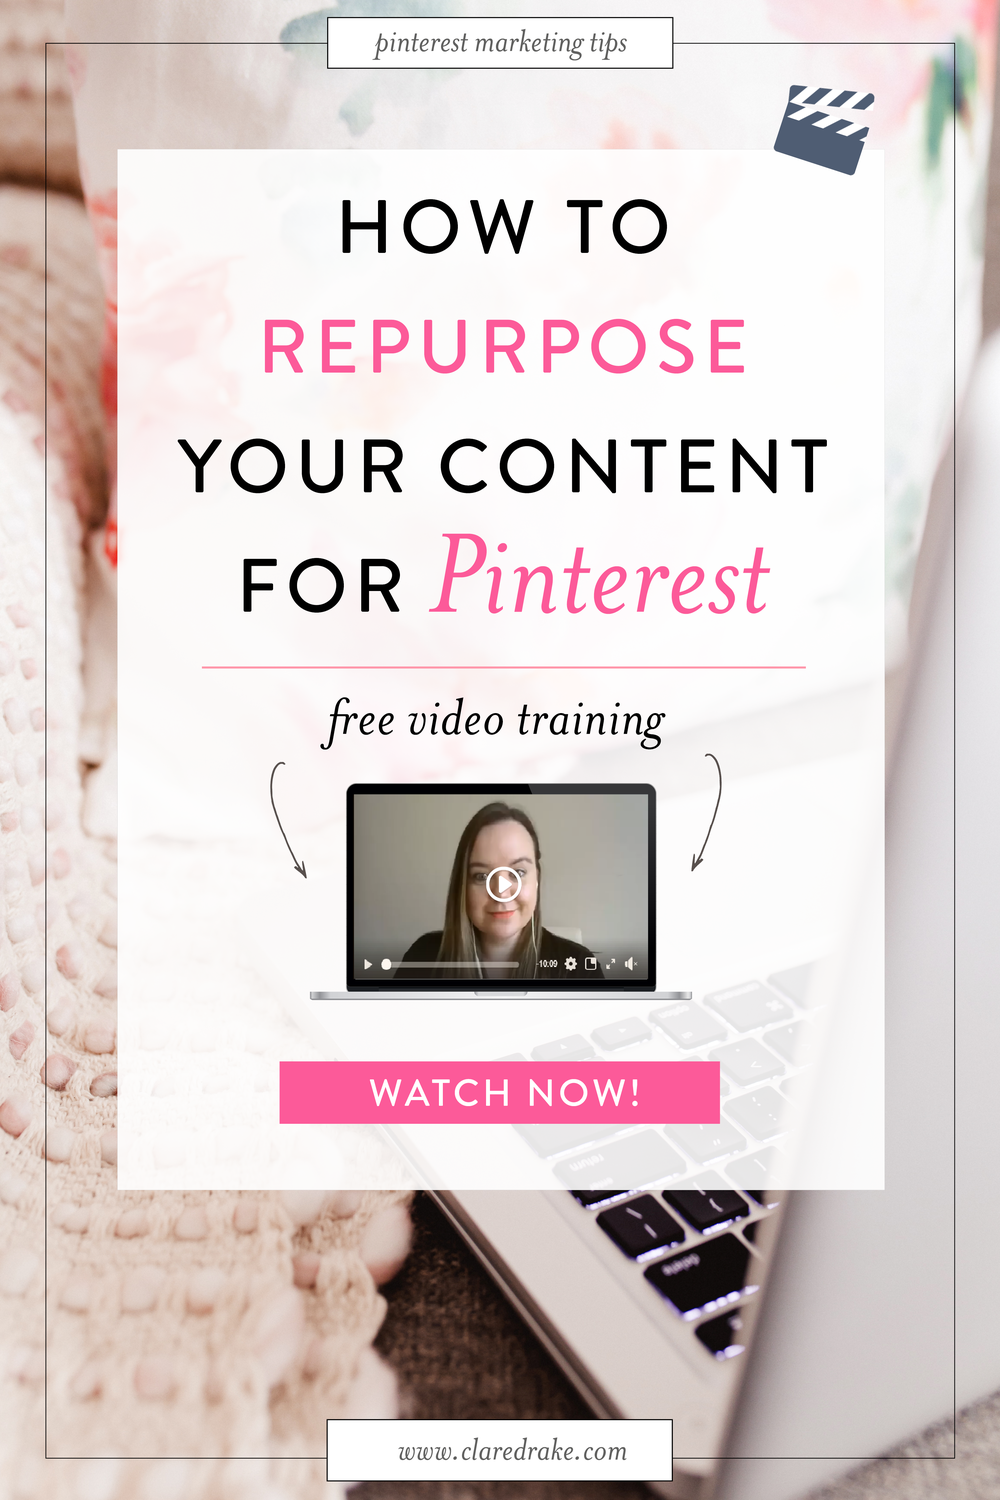 Want more eyeballs on your business? Get ready to maximise your content by repurposing it (and your products and services) through creative graphics that you can add to Pinterest to increase your visibility, click throughs & revenue! Watch now! #pinteresttips #pinterestforyourbusiness #socialmediatips #pinterestmarketing #onlinebusinesstips #smallbusinesstips #socialmediastrategies #repurposingcontent #canva #pinterestgraphics #fblive